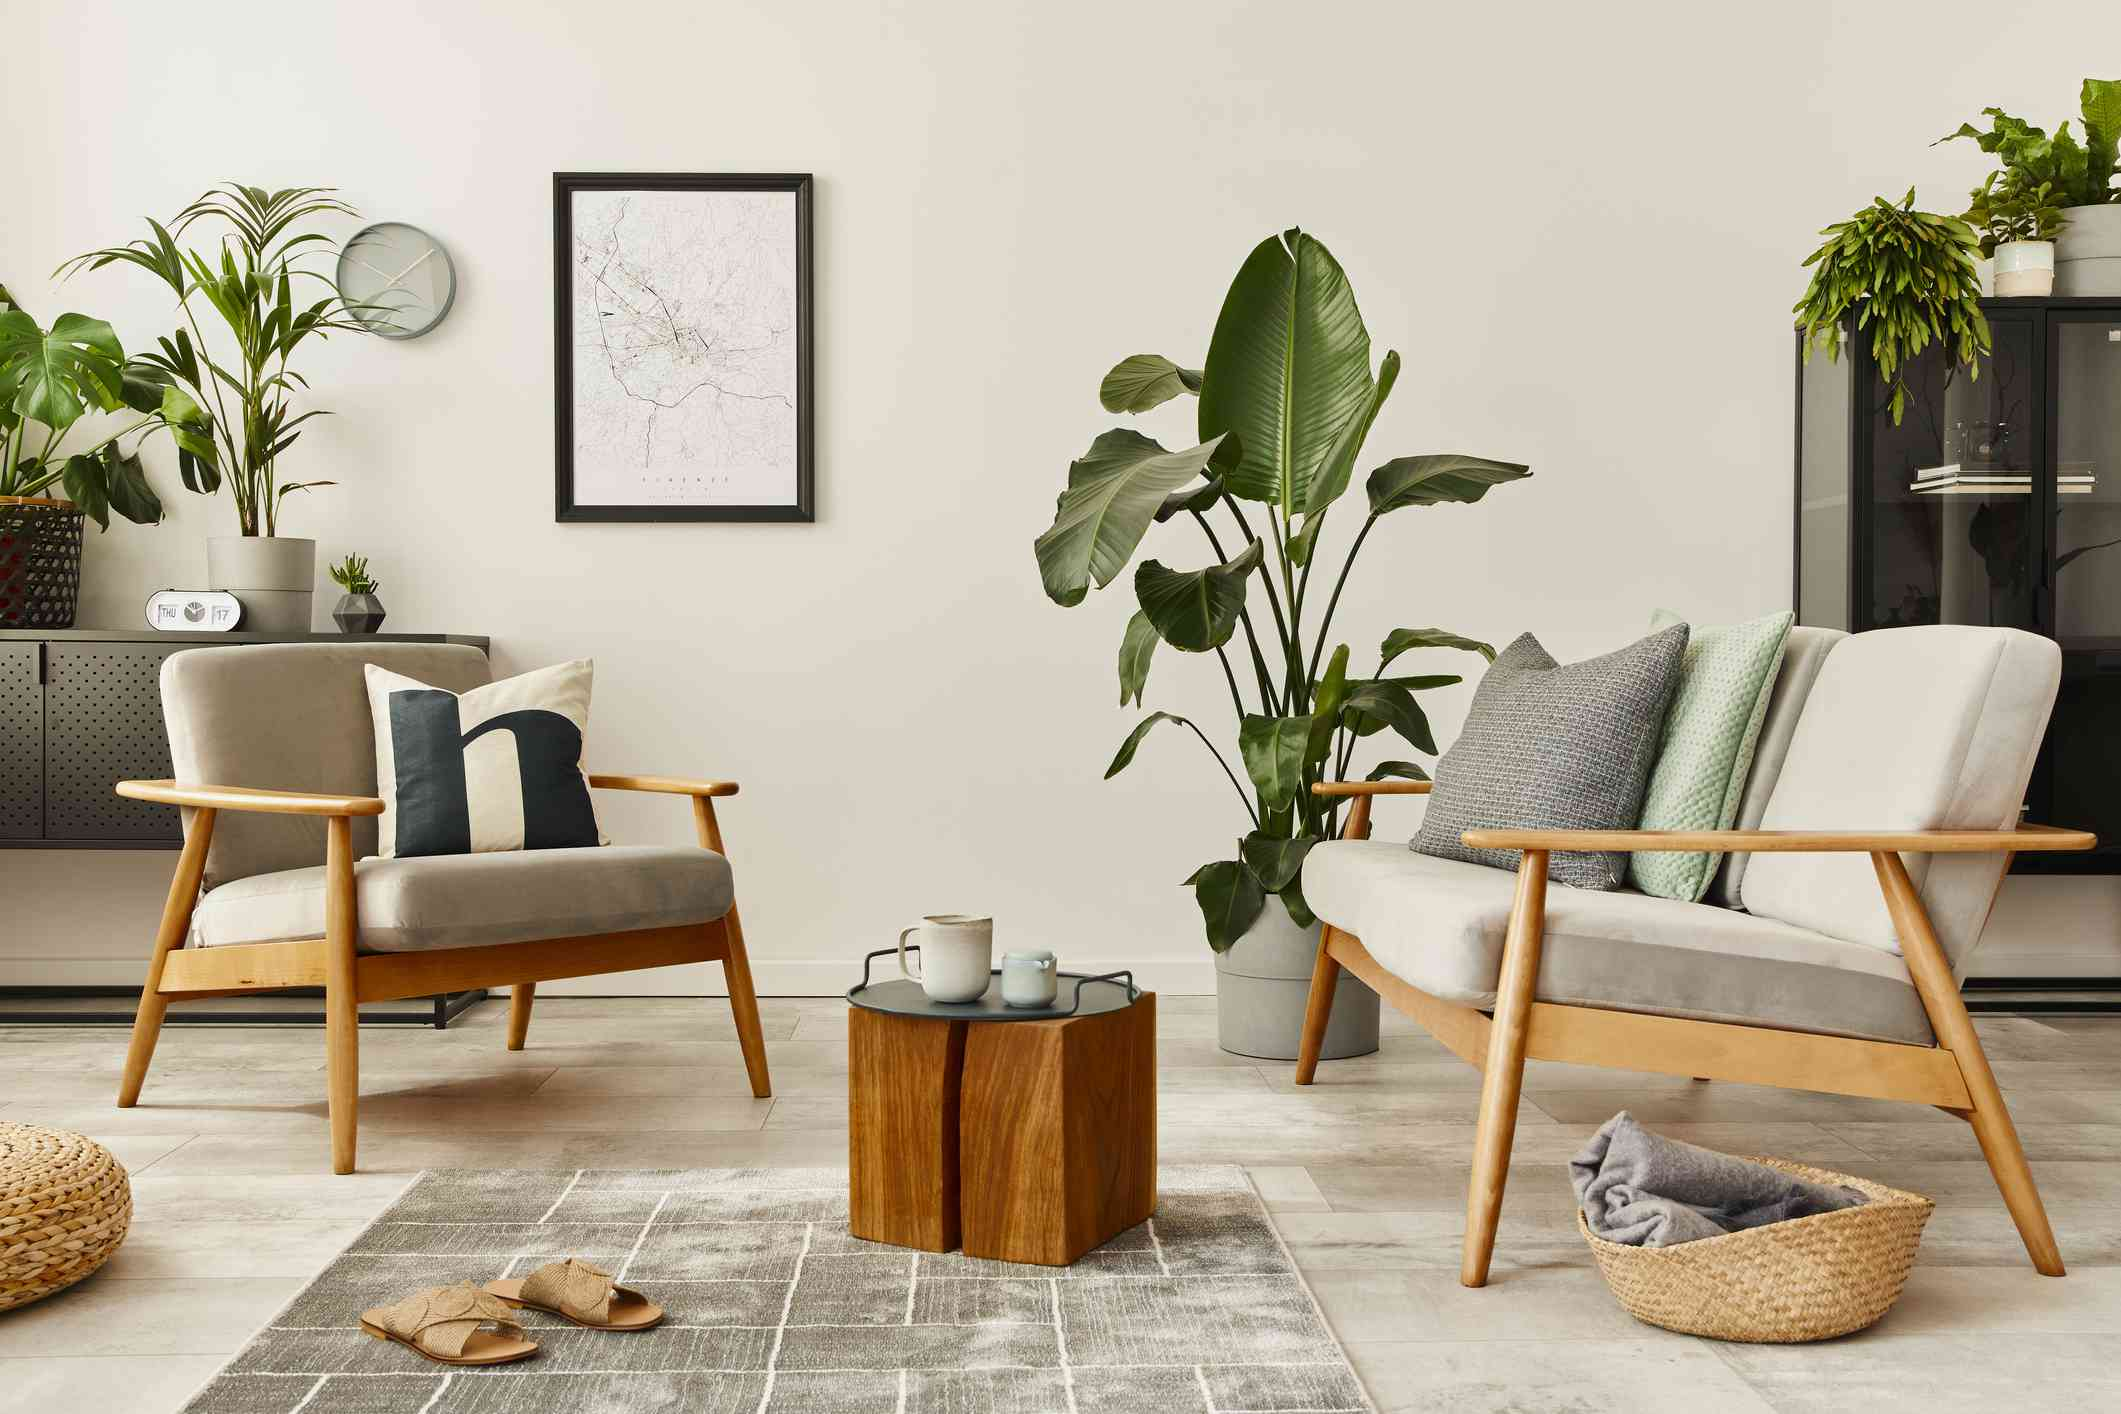 A natural living room with plants